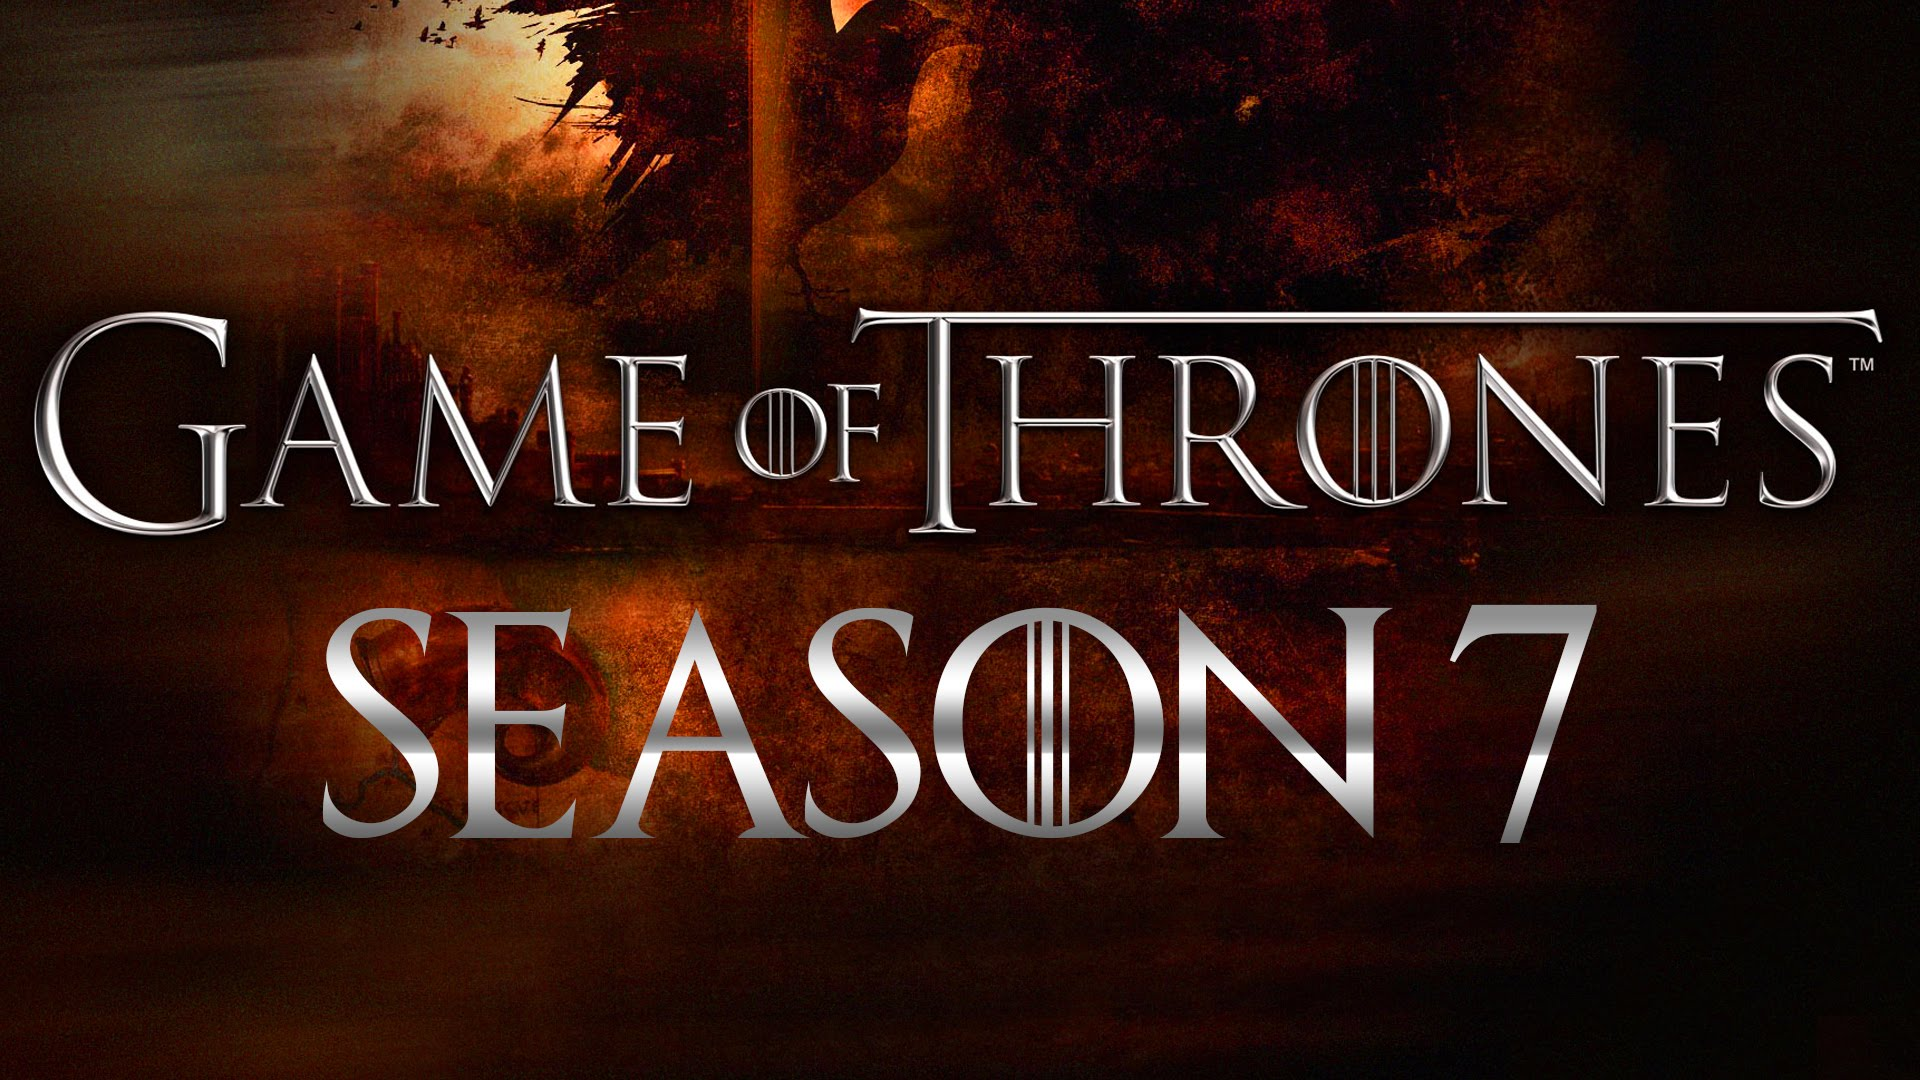 Game of Thrones S06E09 –Battle of the Bastards, serial online subtitrat